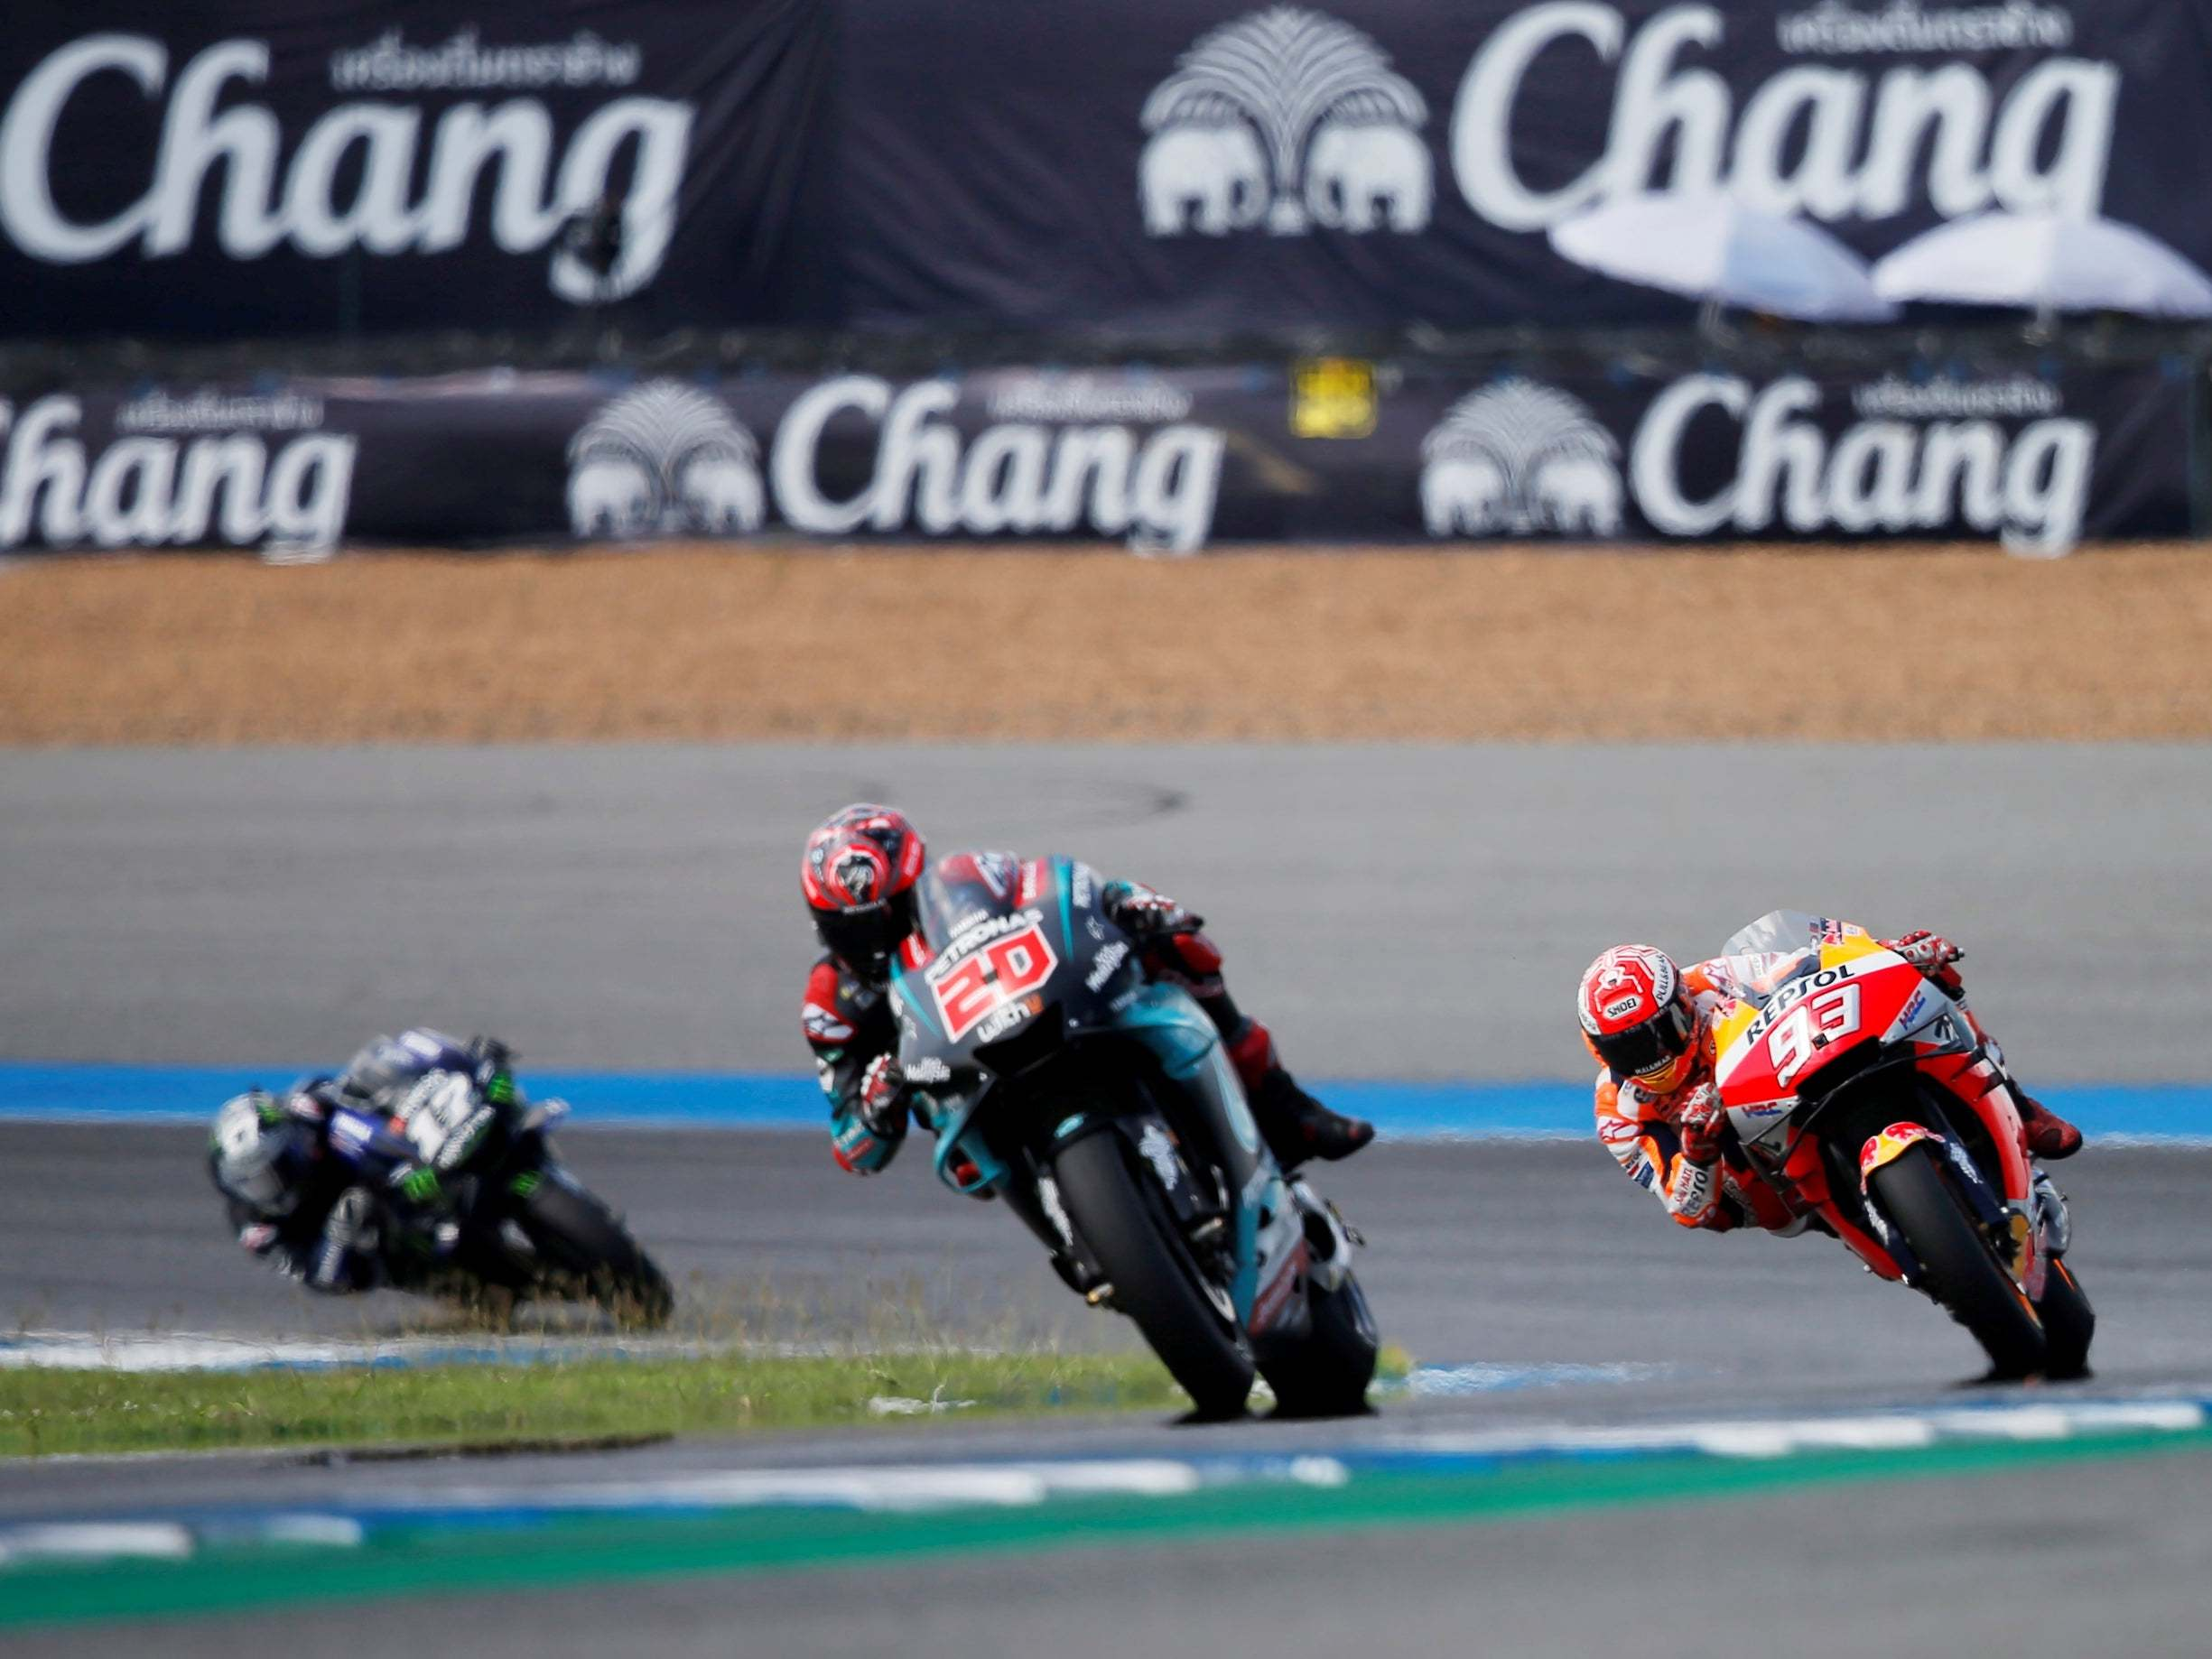 Motorsport eSports schedule: Where to watch MotoGP and All-Star Battle motorsport events this weekend